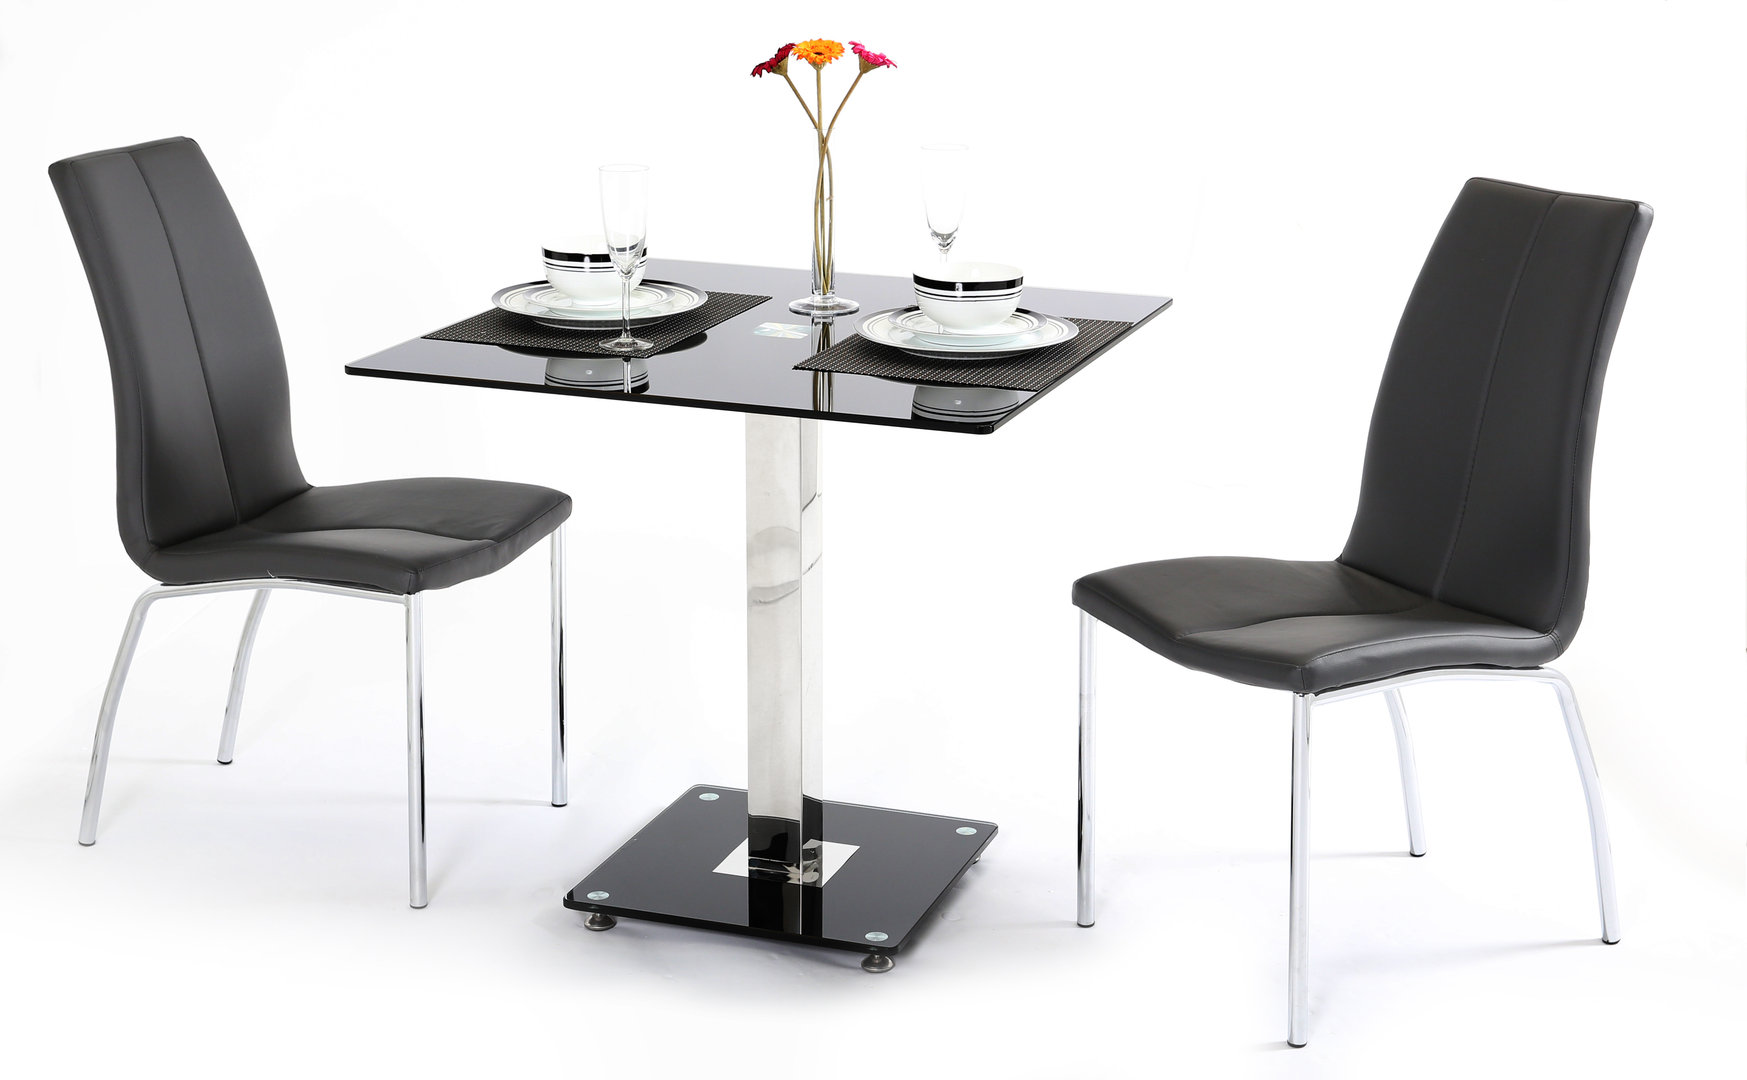 square glass dining table. black glass dining table and 2 chairs square